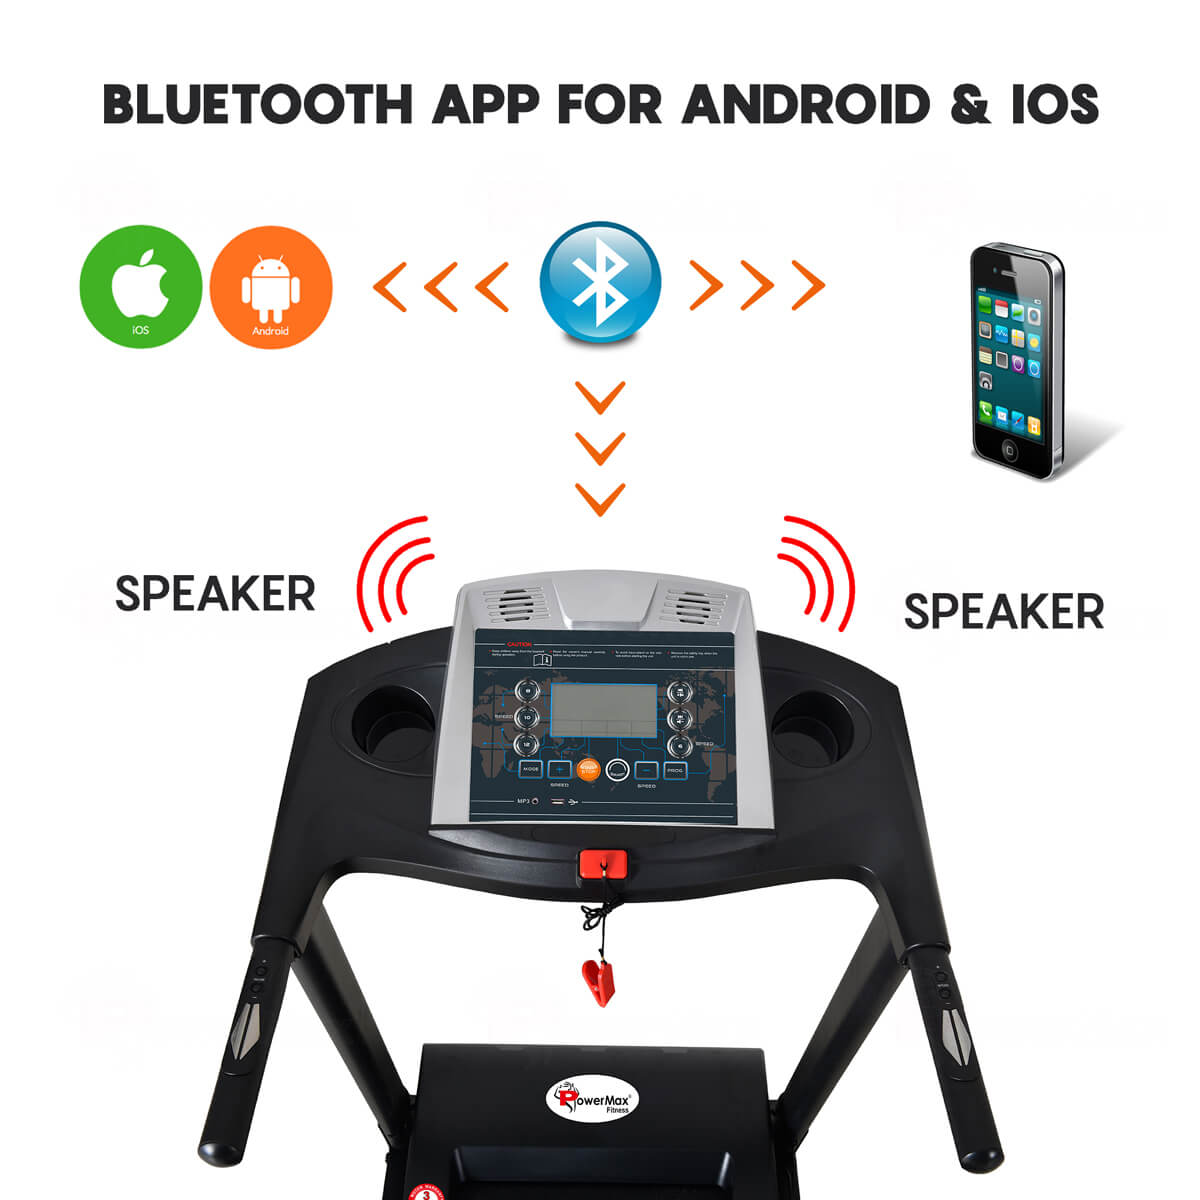 treadmill with Bluetooth app for Android & iOS